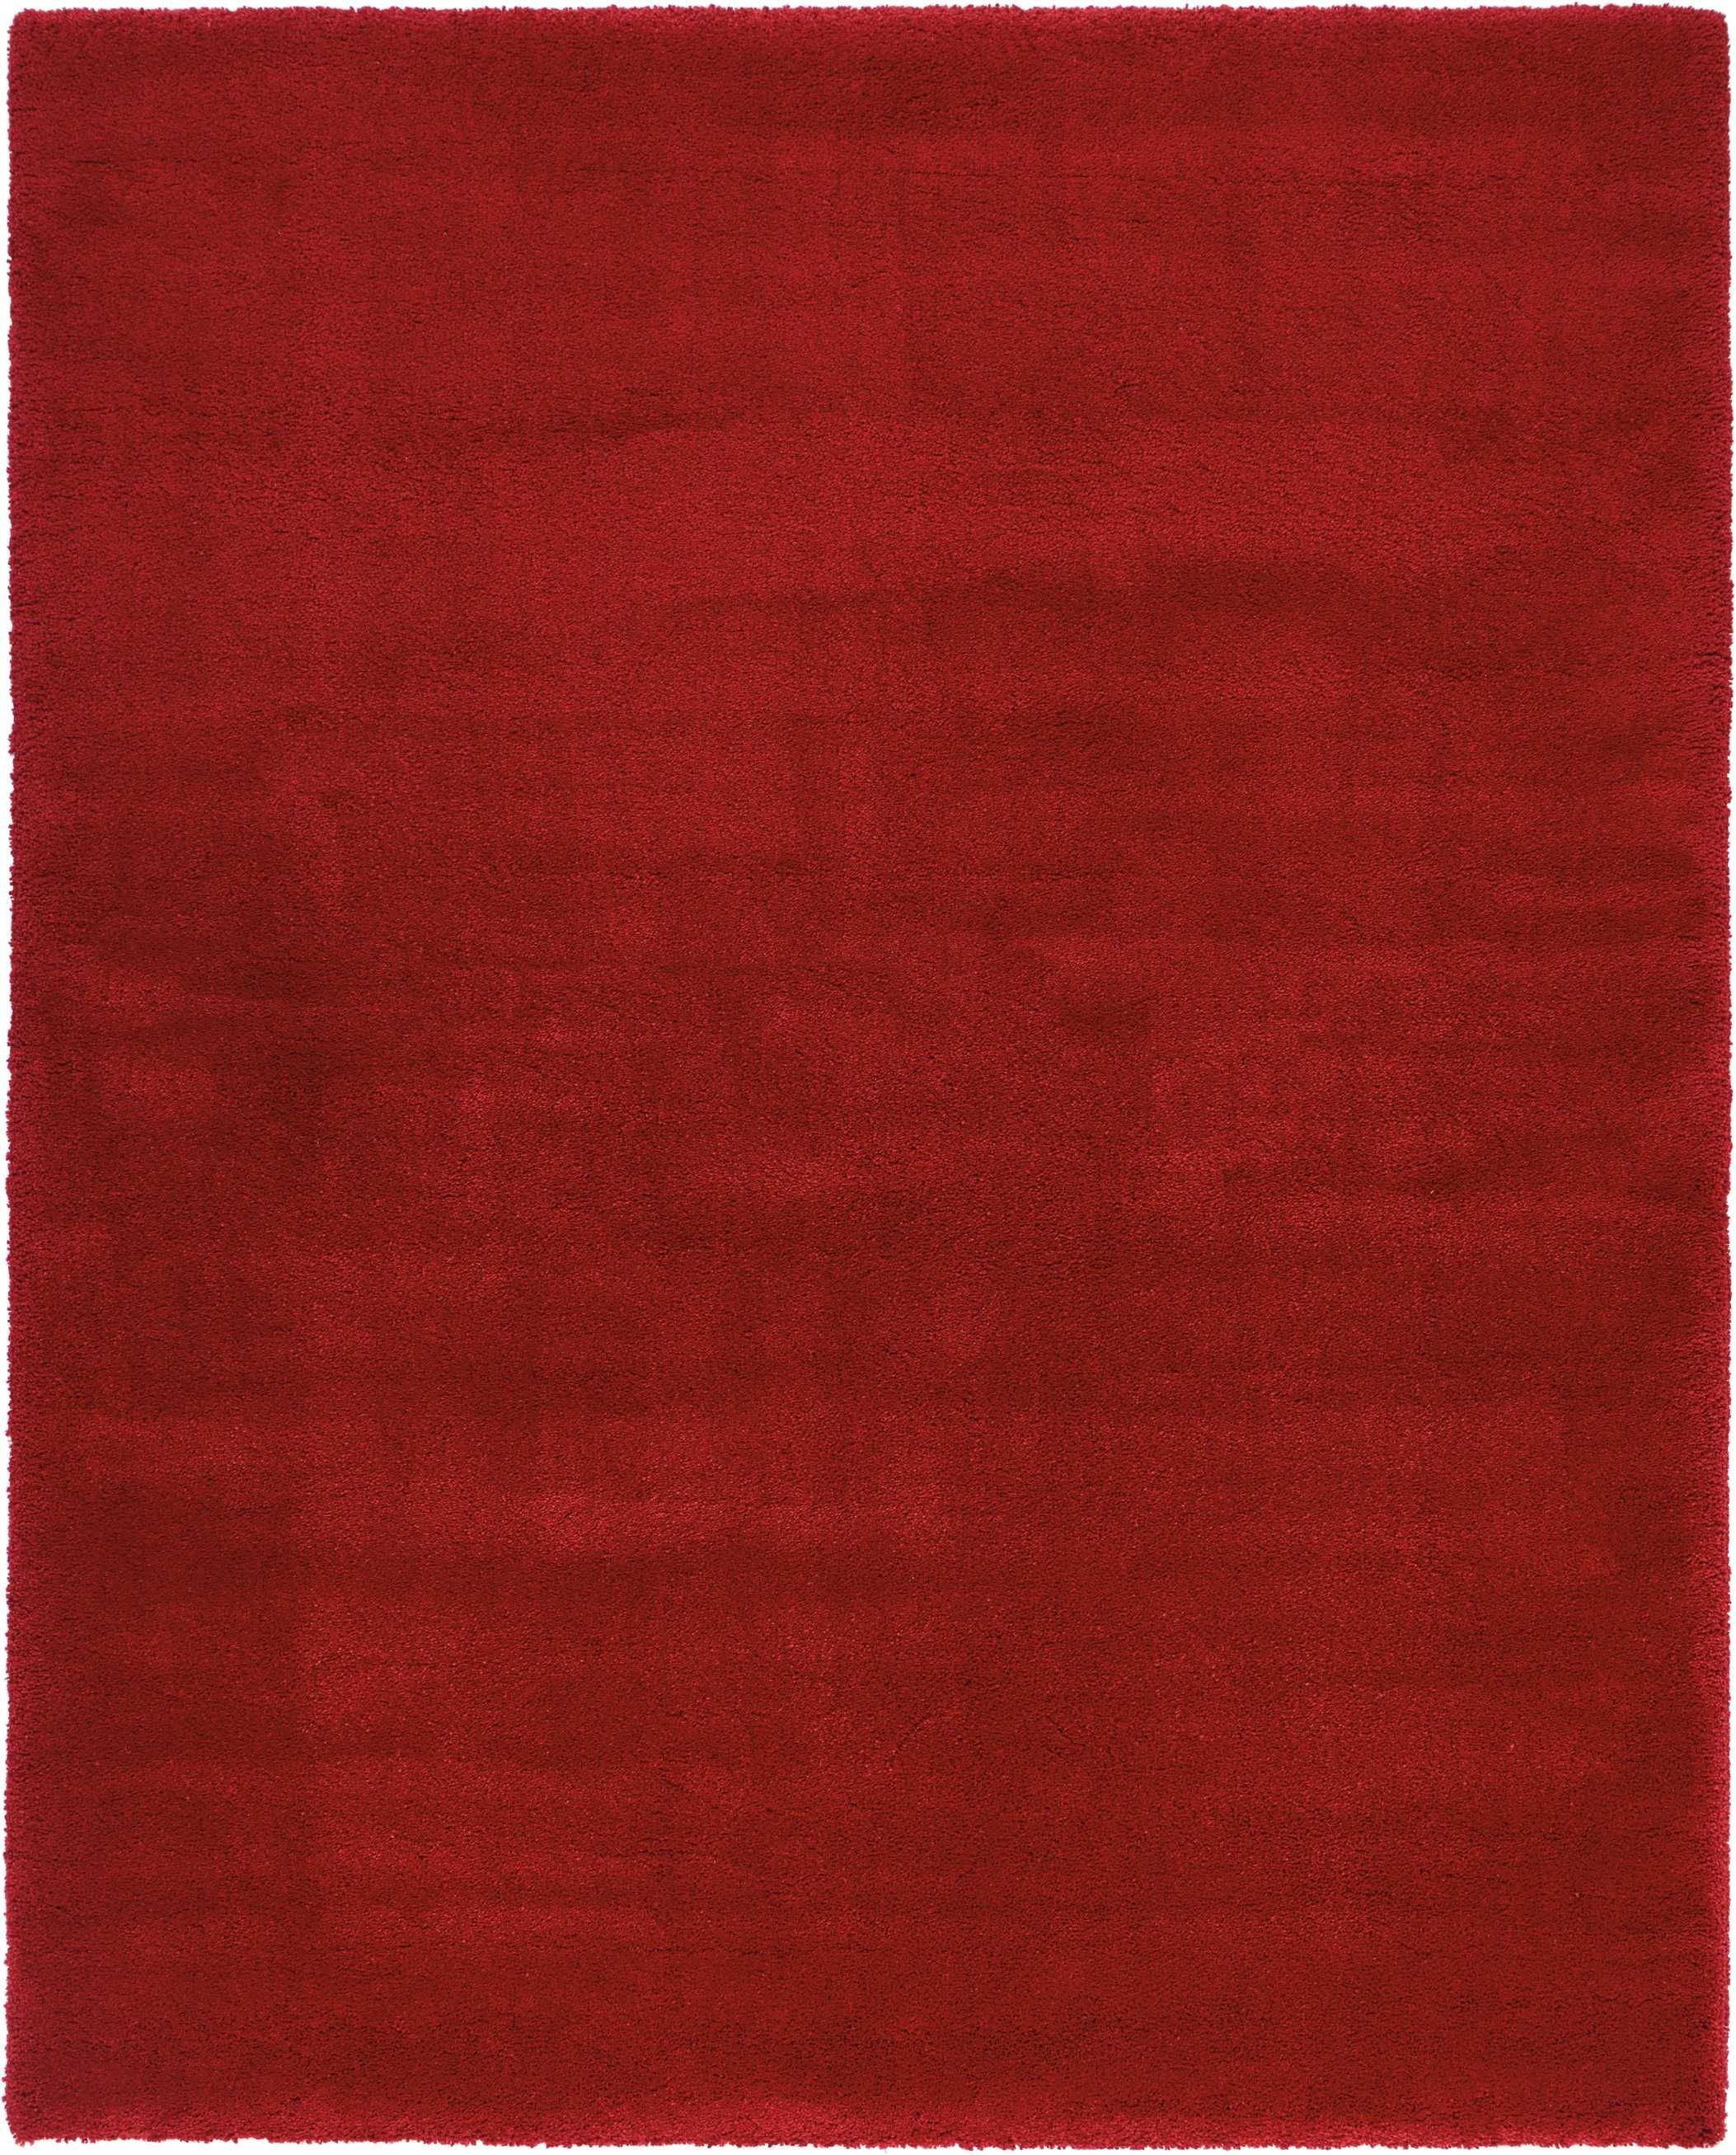 CK700 Brooklyn Burgundy This Greenpoint area rug by